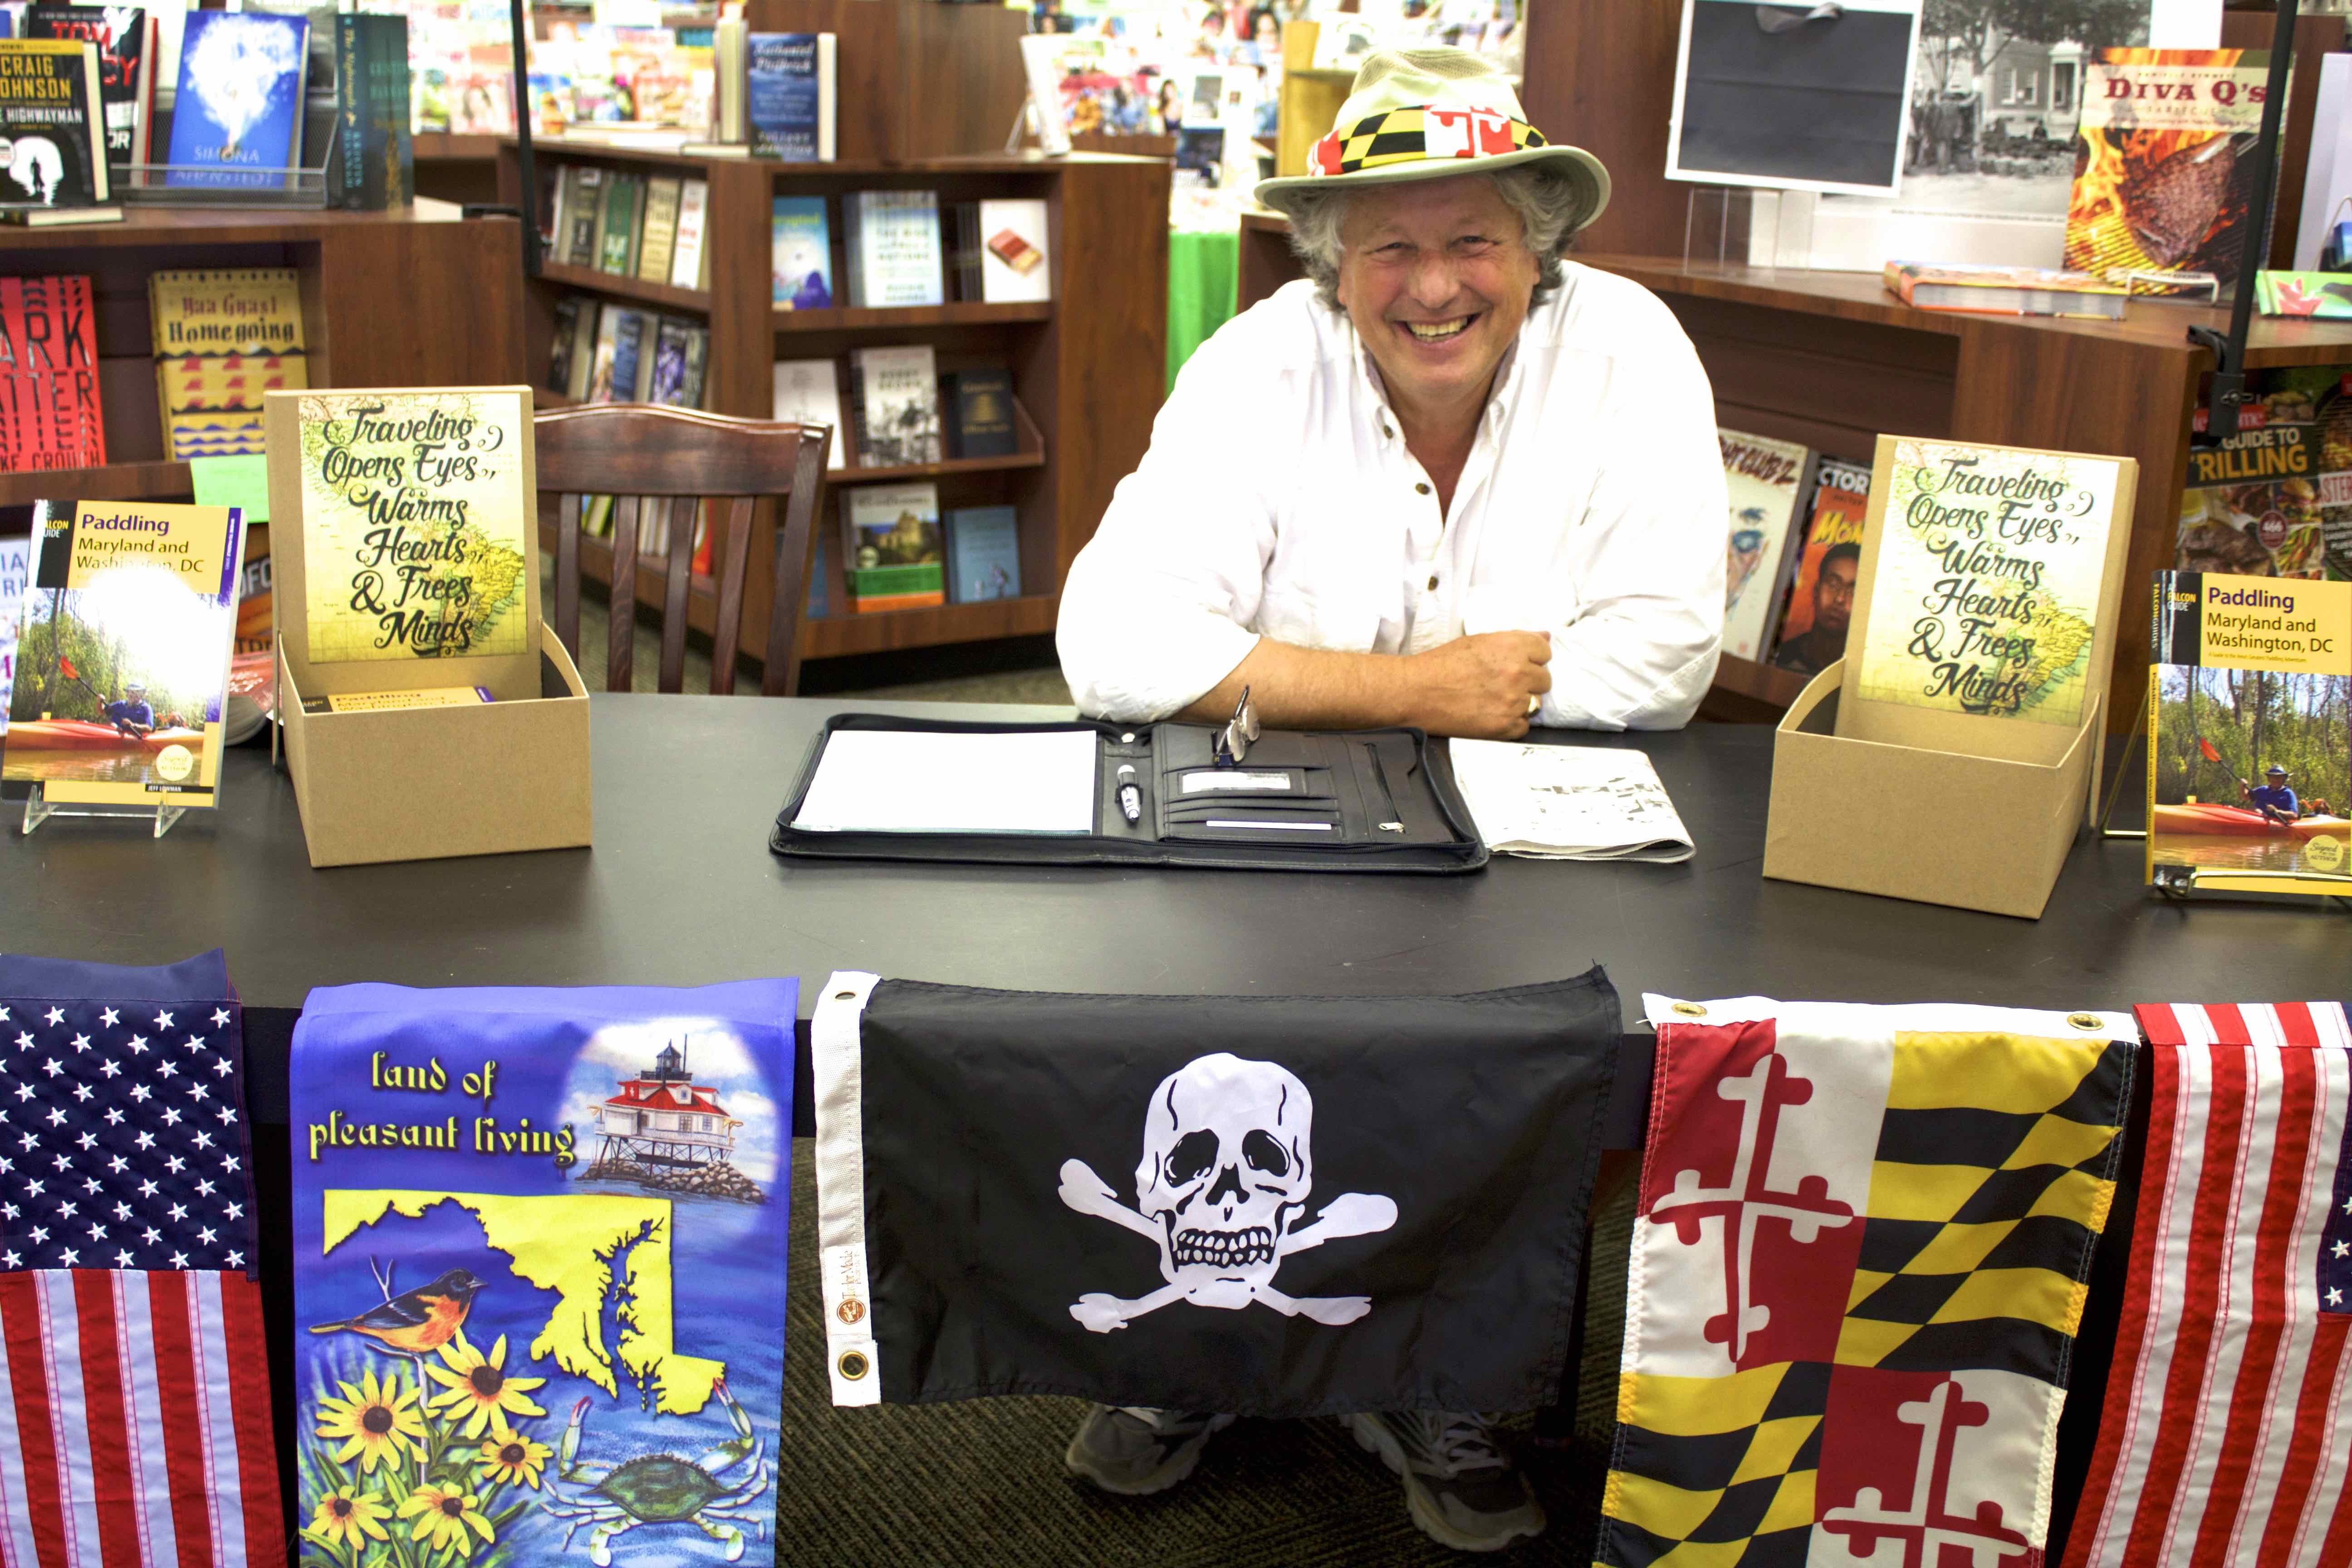 Jeff Lowman at Author Book Signing